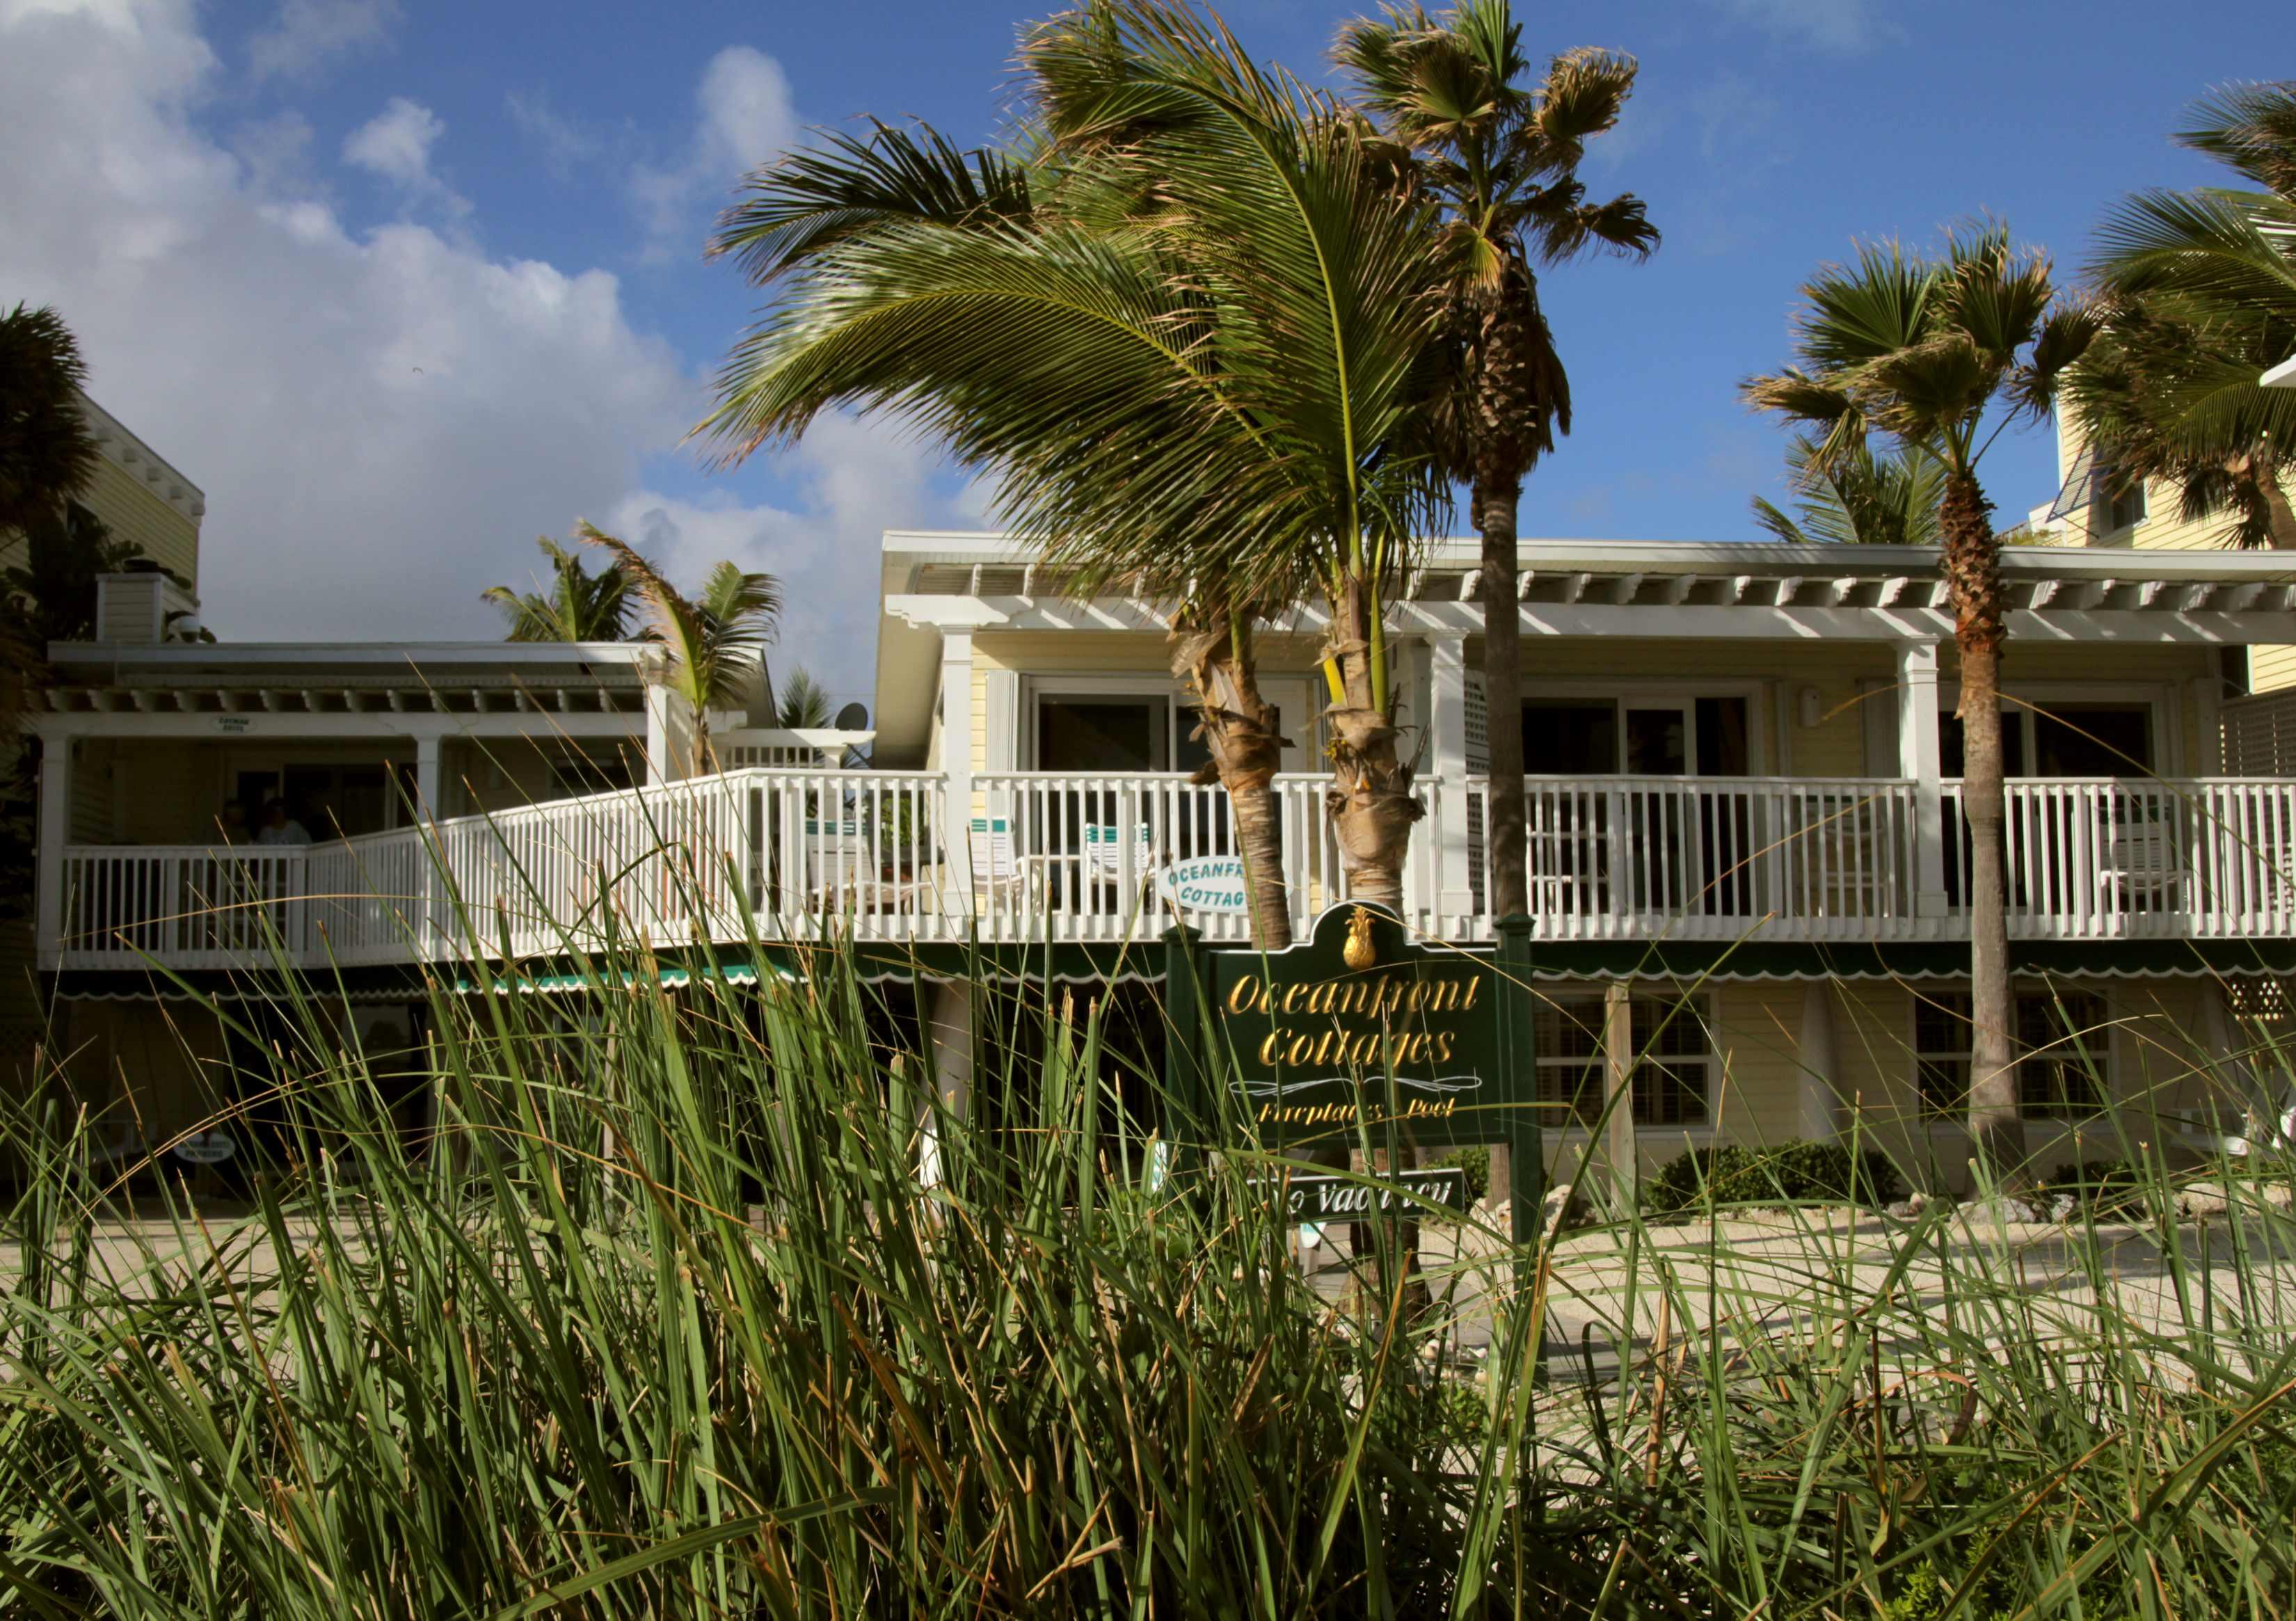 Oceanfront Cottages